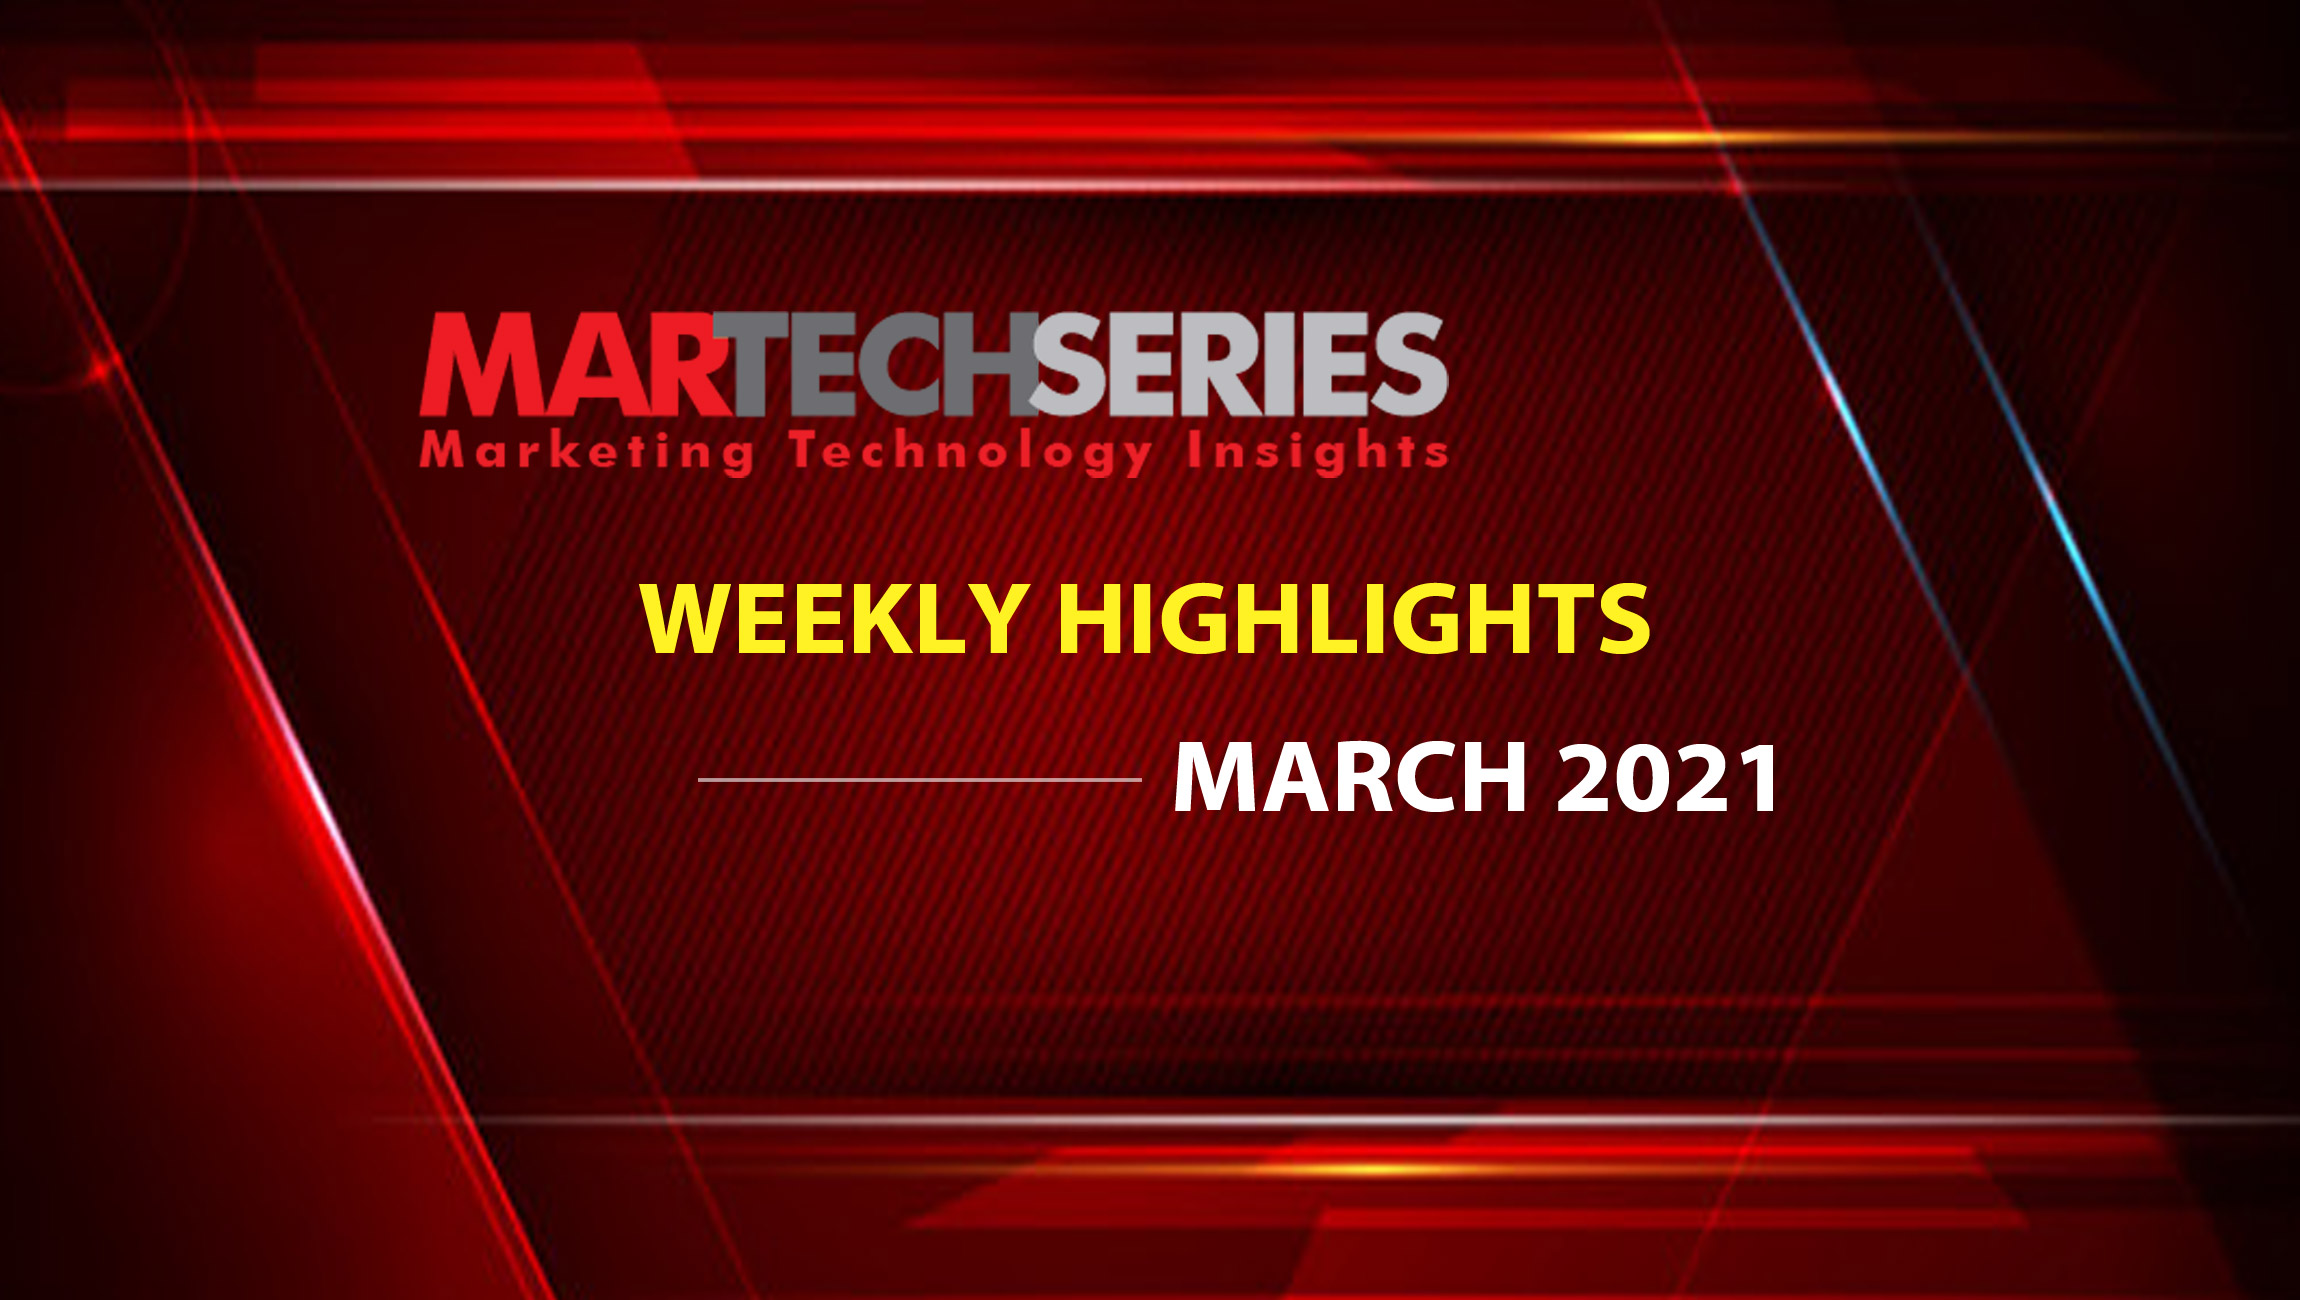 Marketing Technology Highlights of The Week: 29-March-2021: Featuring mParticle, Microsoft, ServiceNow, Tableau!